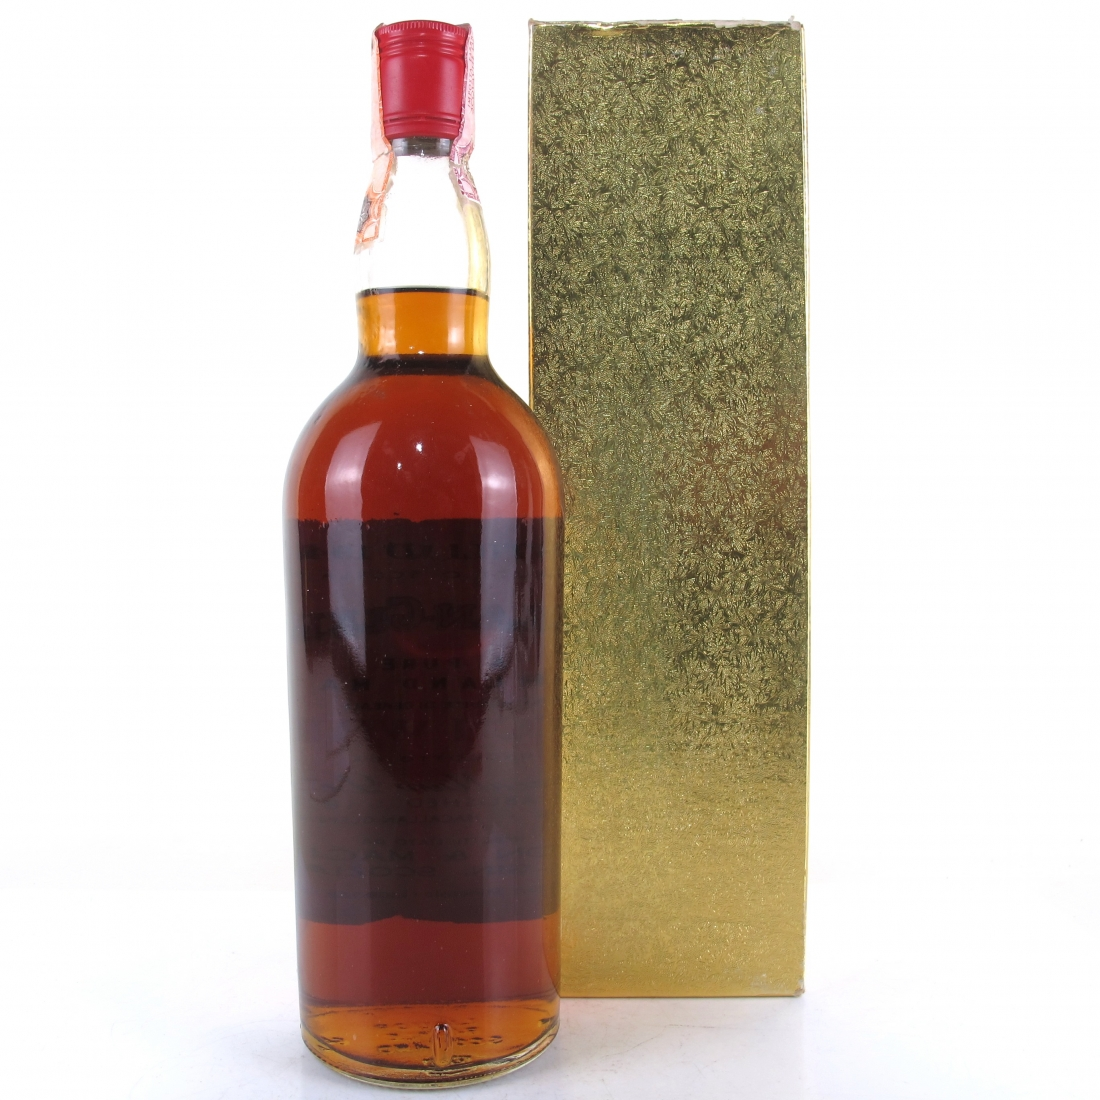 Macallan 1948 Gordon and MacPhail 25 Year Old / Pinerolo Import